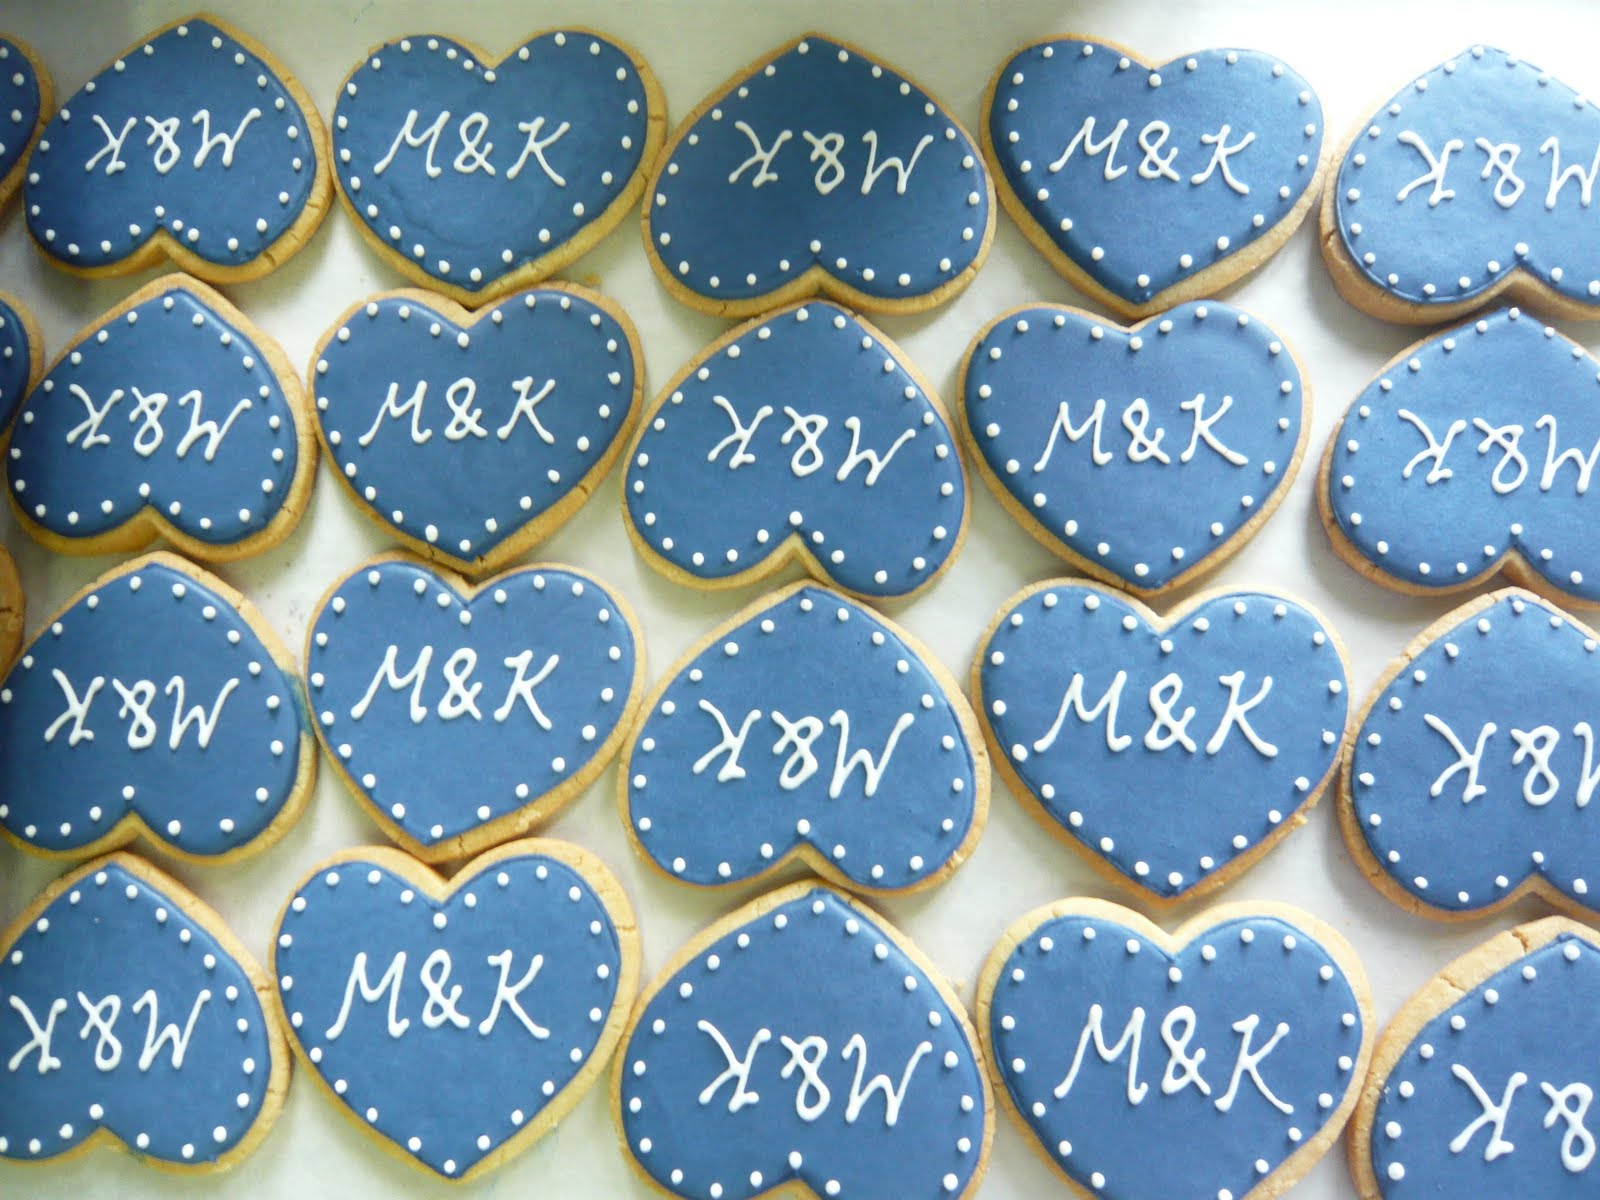 Sift: Wedding cookies and customized cupcakes